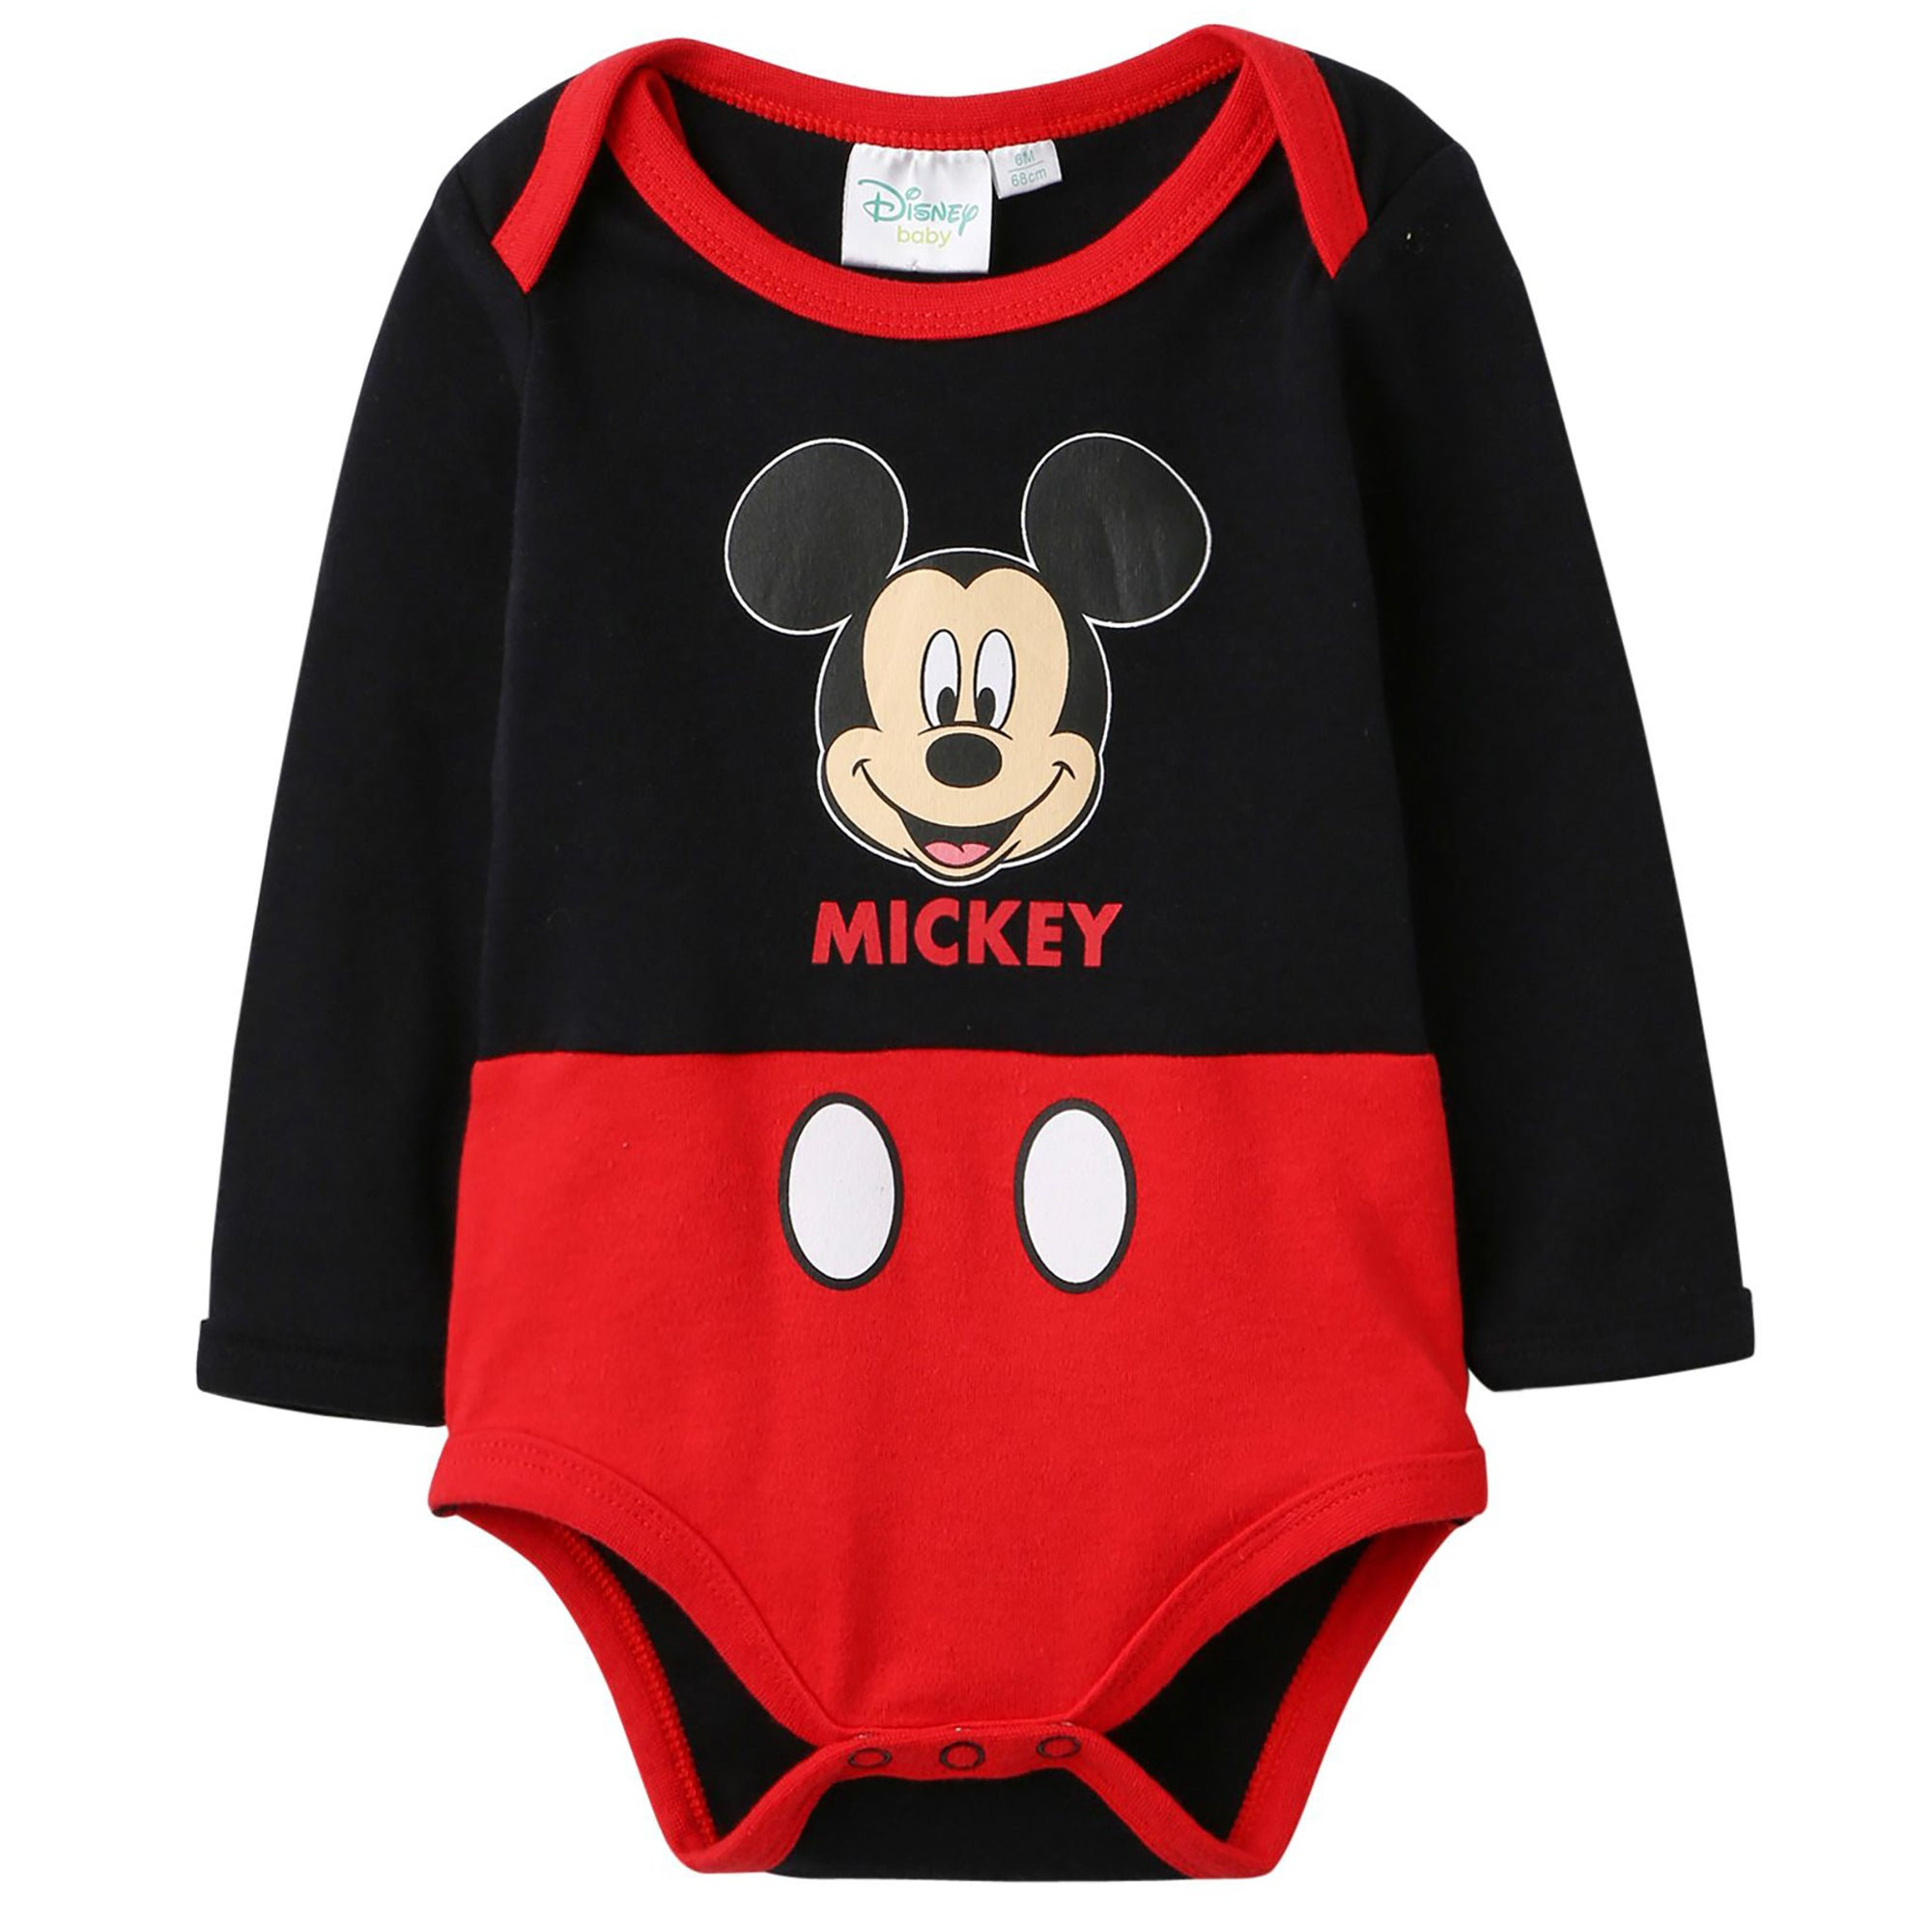 Disney Mickey Mouse Baby Boys Long Sleeve Bodysuit 100% Cotton 0-24 Months - Black